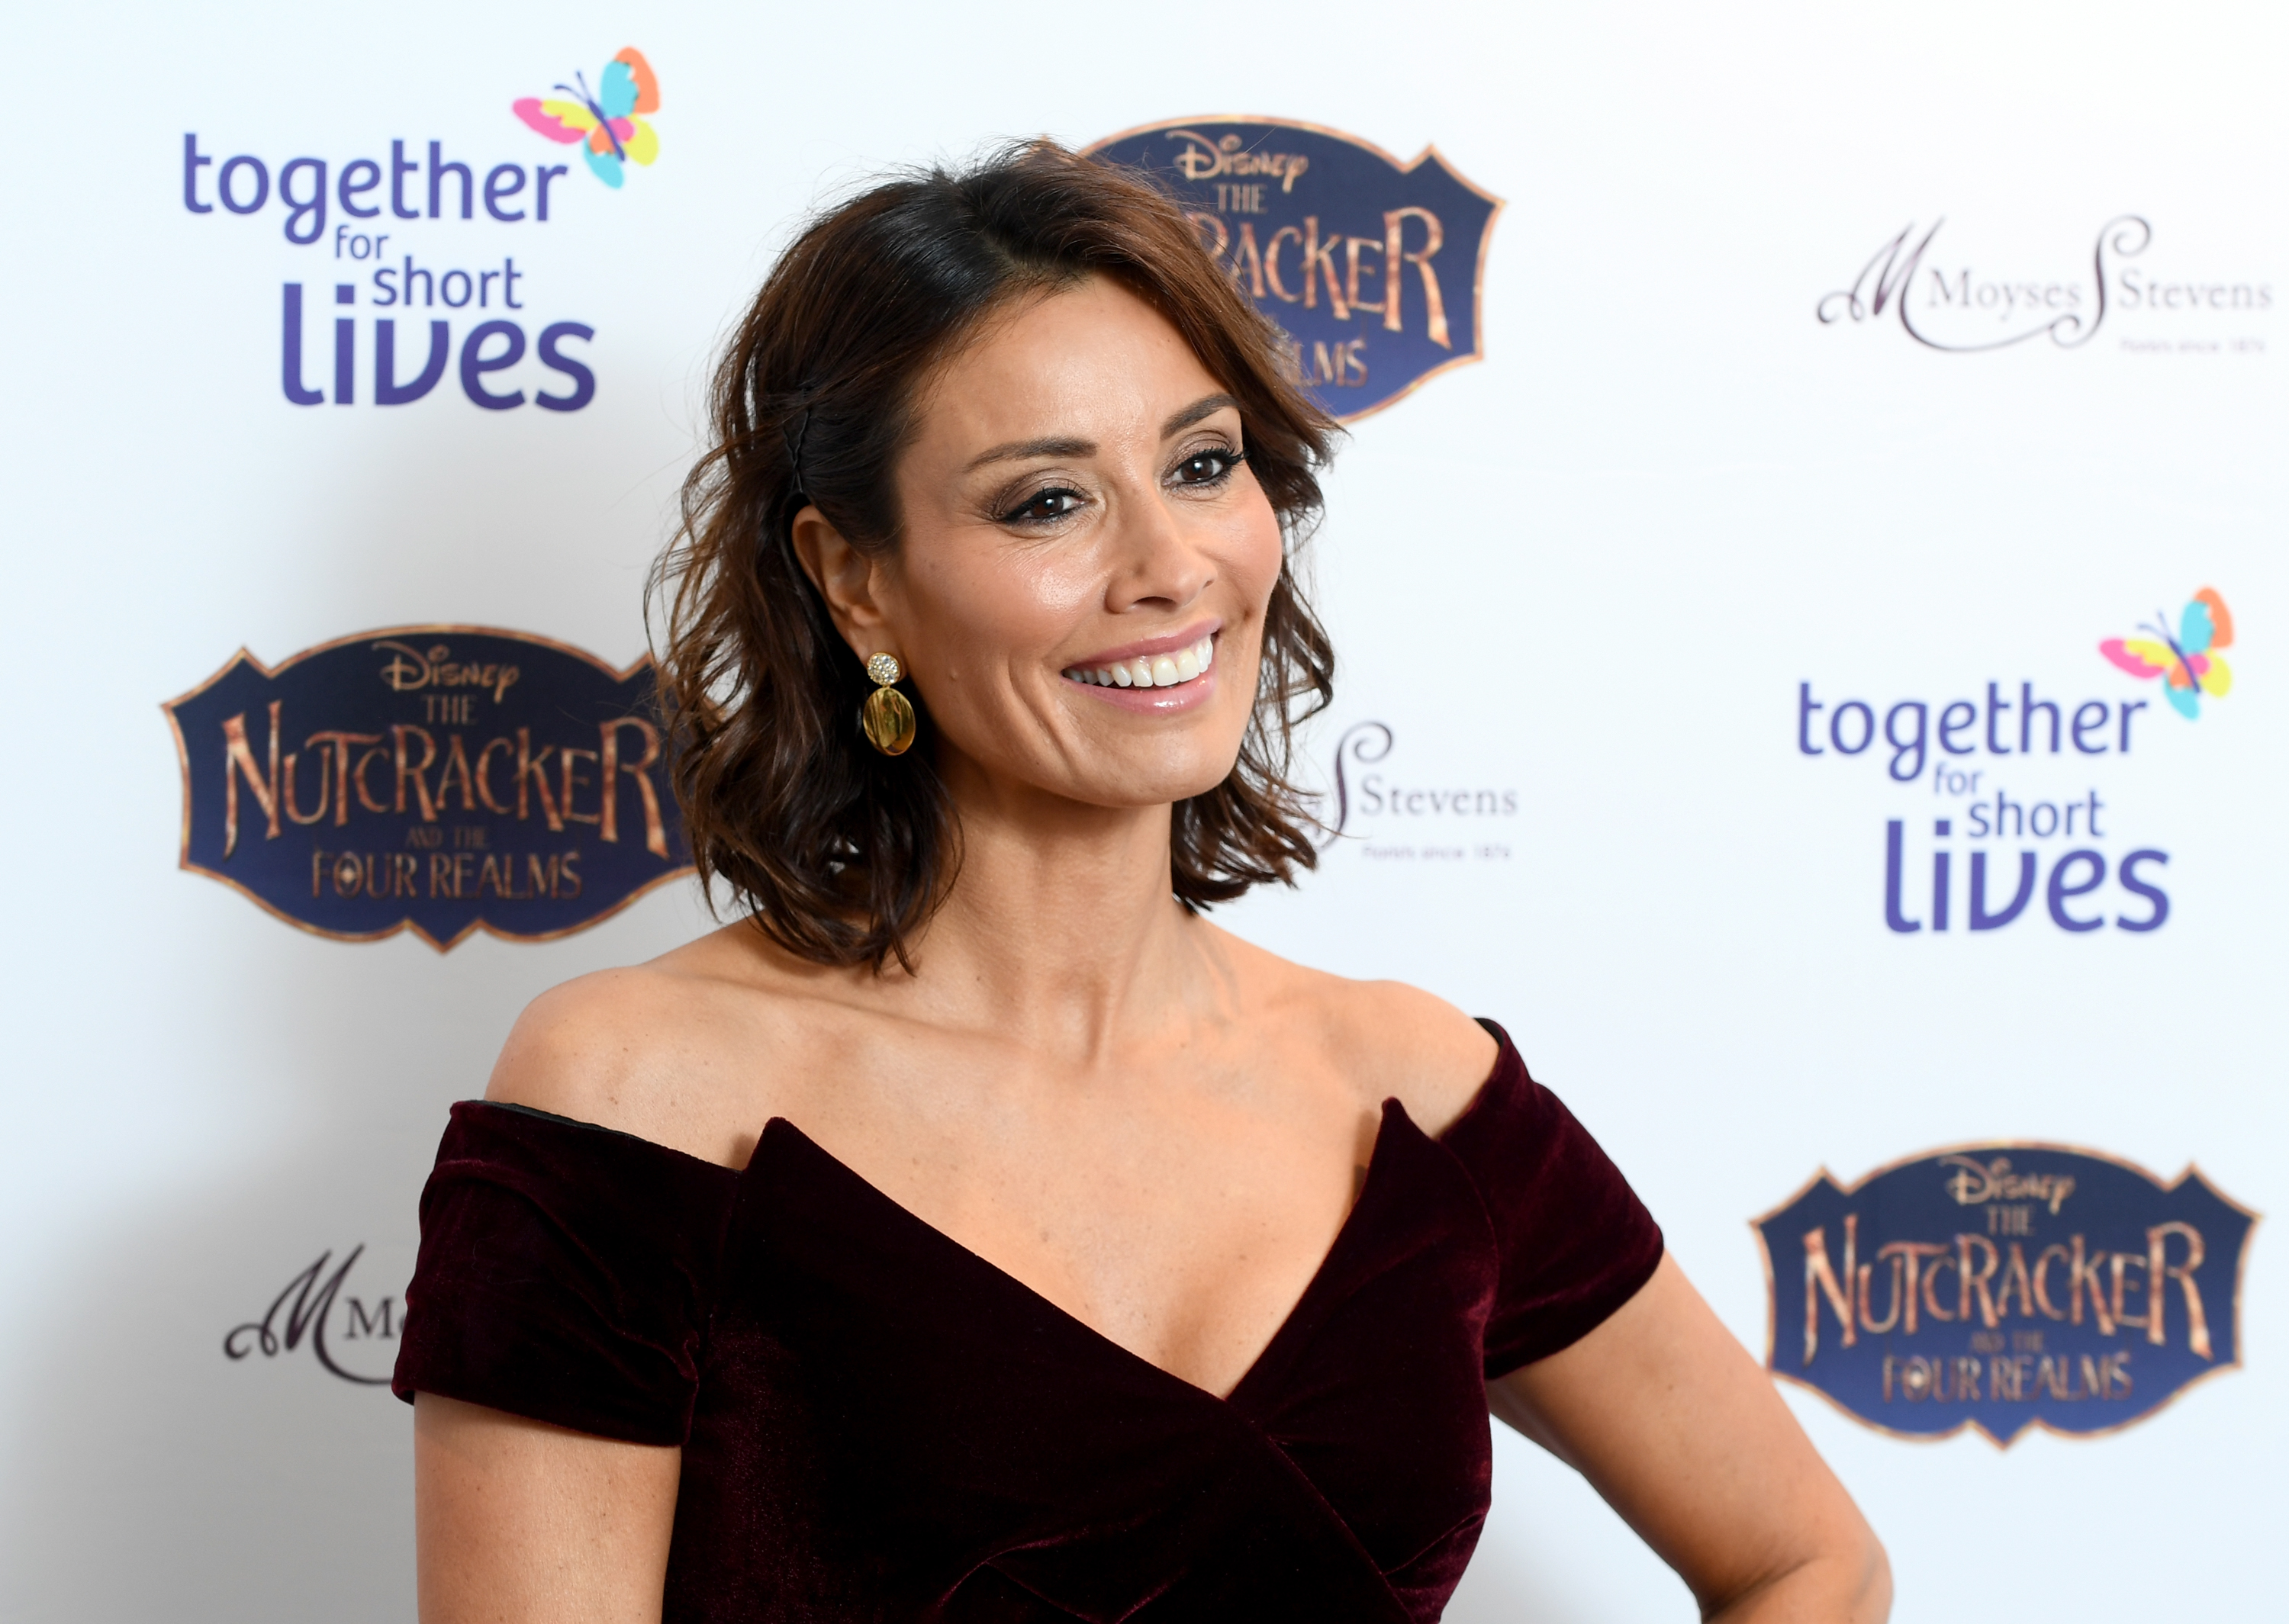 Melanie Sykes appeared to not isolate after returning from Italy. (Photo by Gareth Cattermole/Getty Images for Together For Short Livessss)